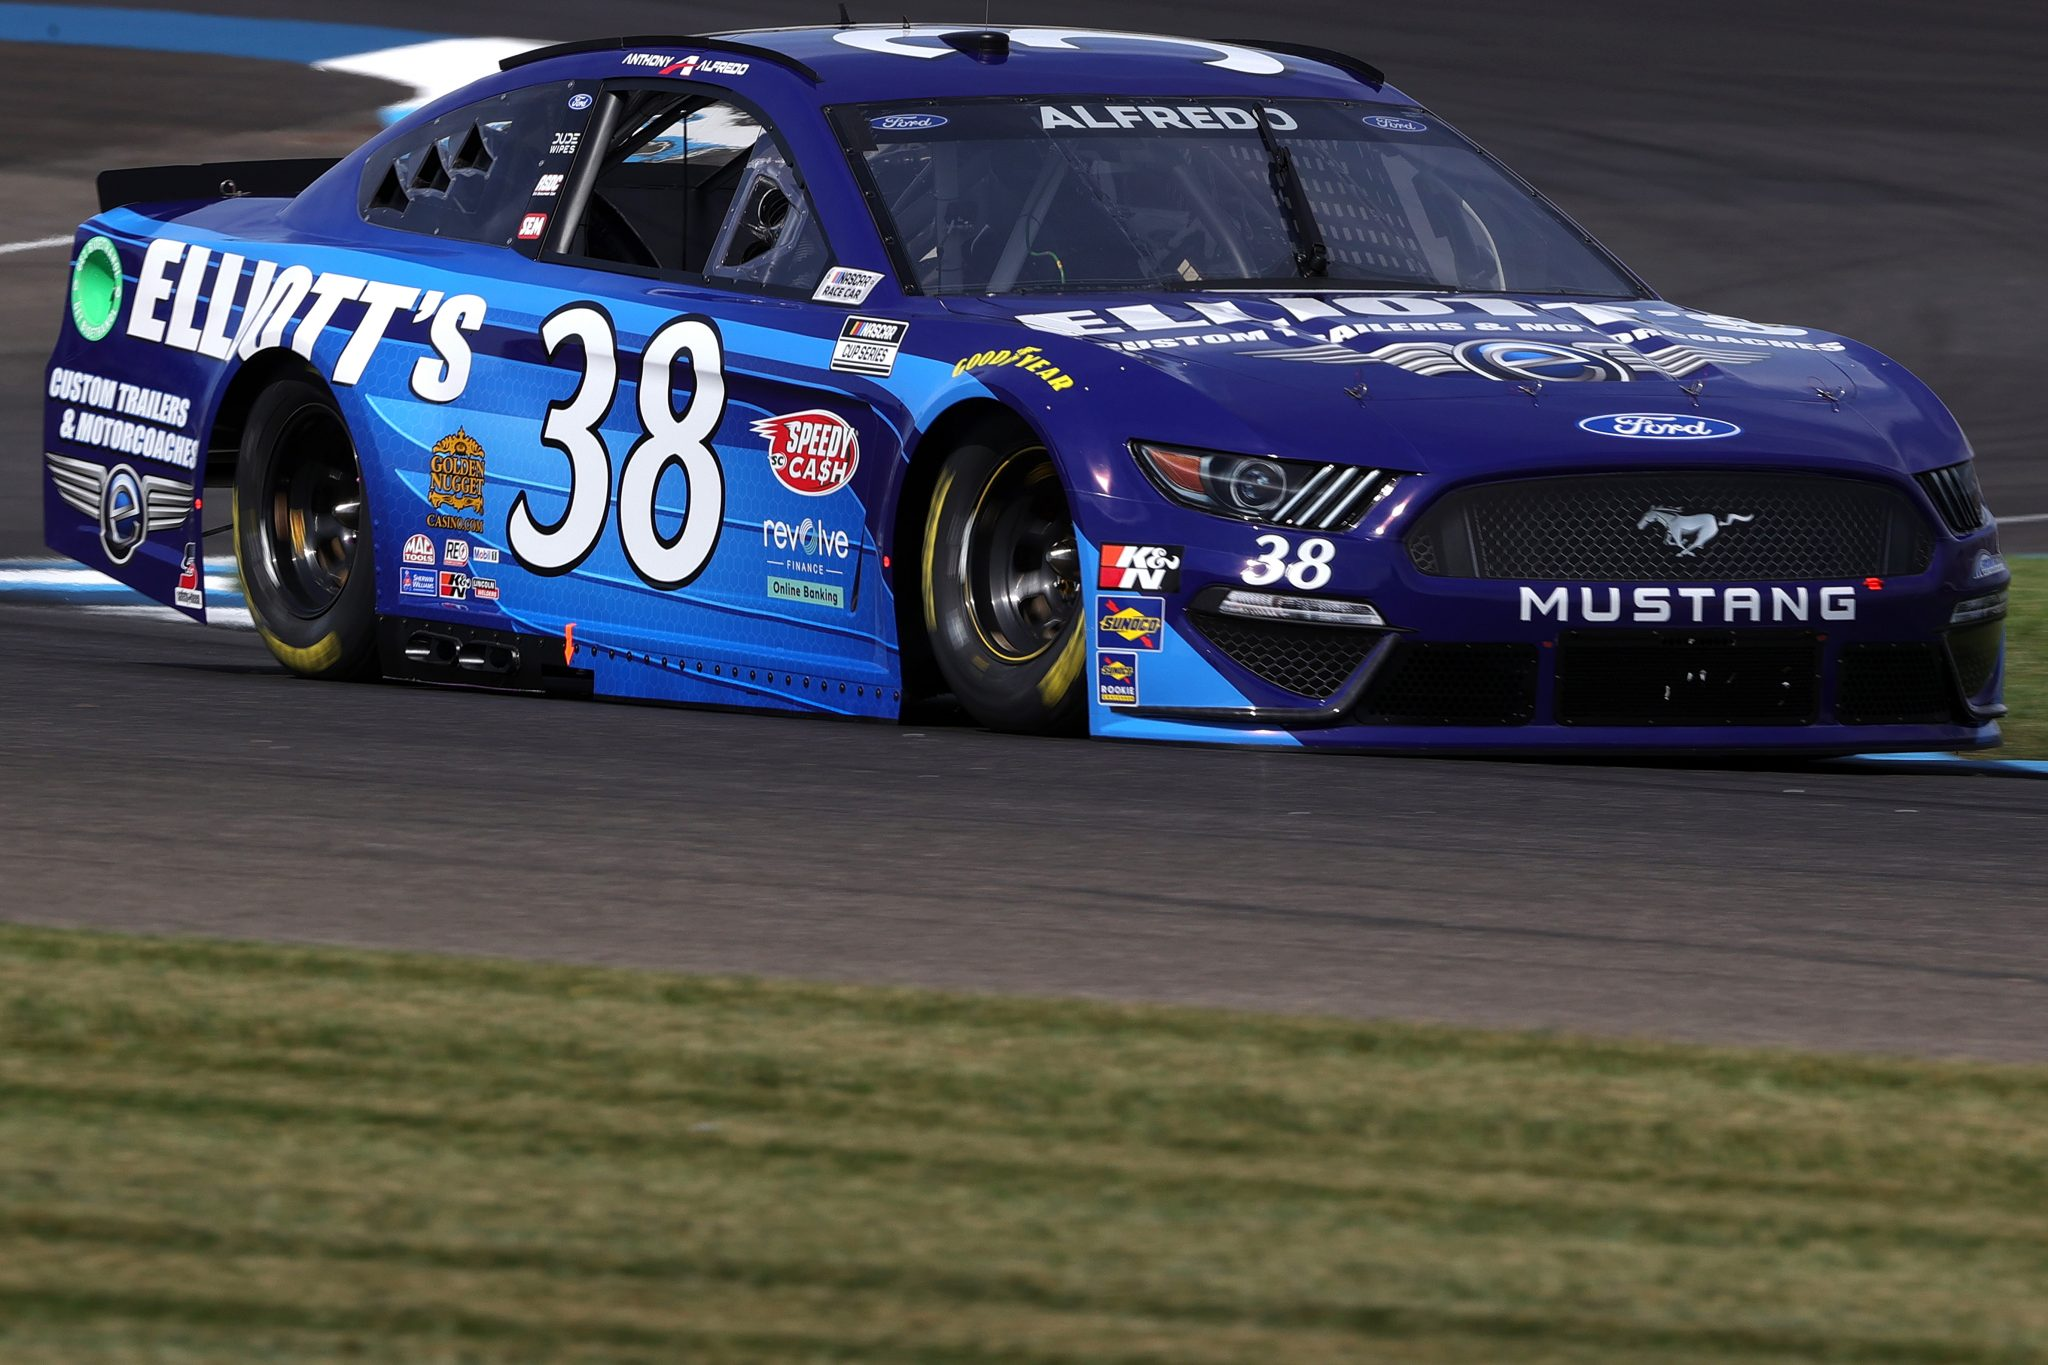 INDIANAPOLIS, INDIANA - AUGUST 14: Anthony Alfredo, driver of the #38 Elliott's Custom Motorcoaches Ford, drives during practice for the NASCAR Cup Series Verizon 200 at the Brickyard at Indianapolis Motor Speedway on August 14, 2021 in Indianapolis, Indiana. (Photo by Stacy Revere/Getty Images)   Getty Images